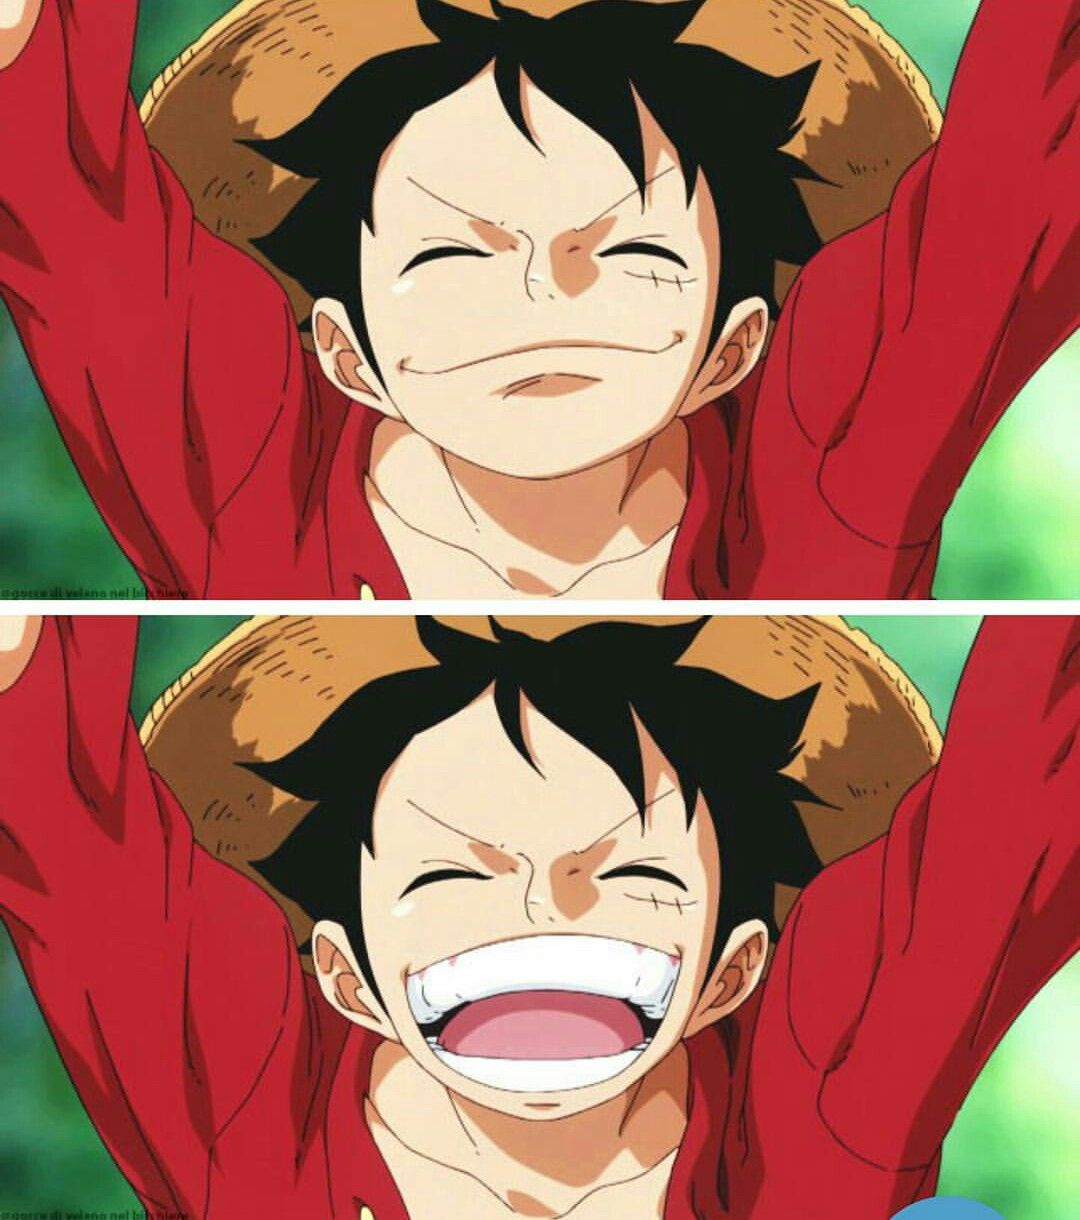 One Piece Monkey D Luffy I Don T Know Why But I Love This